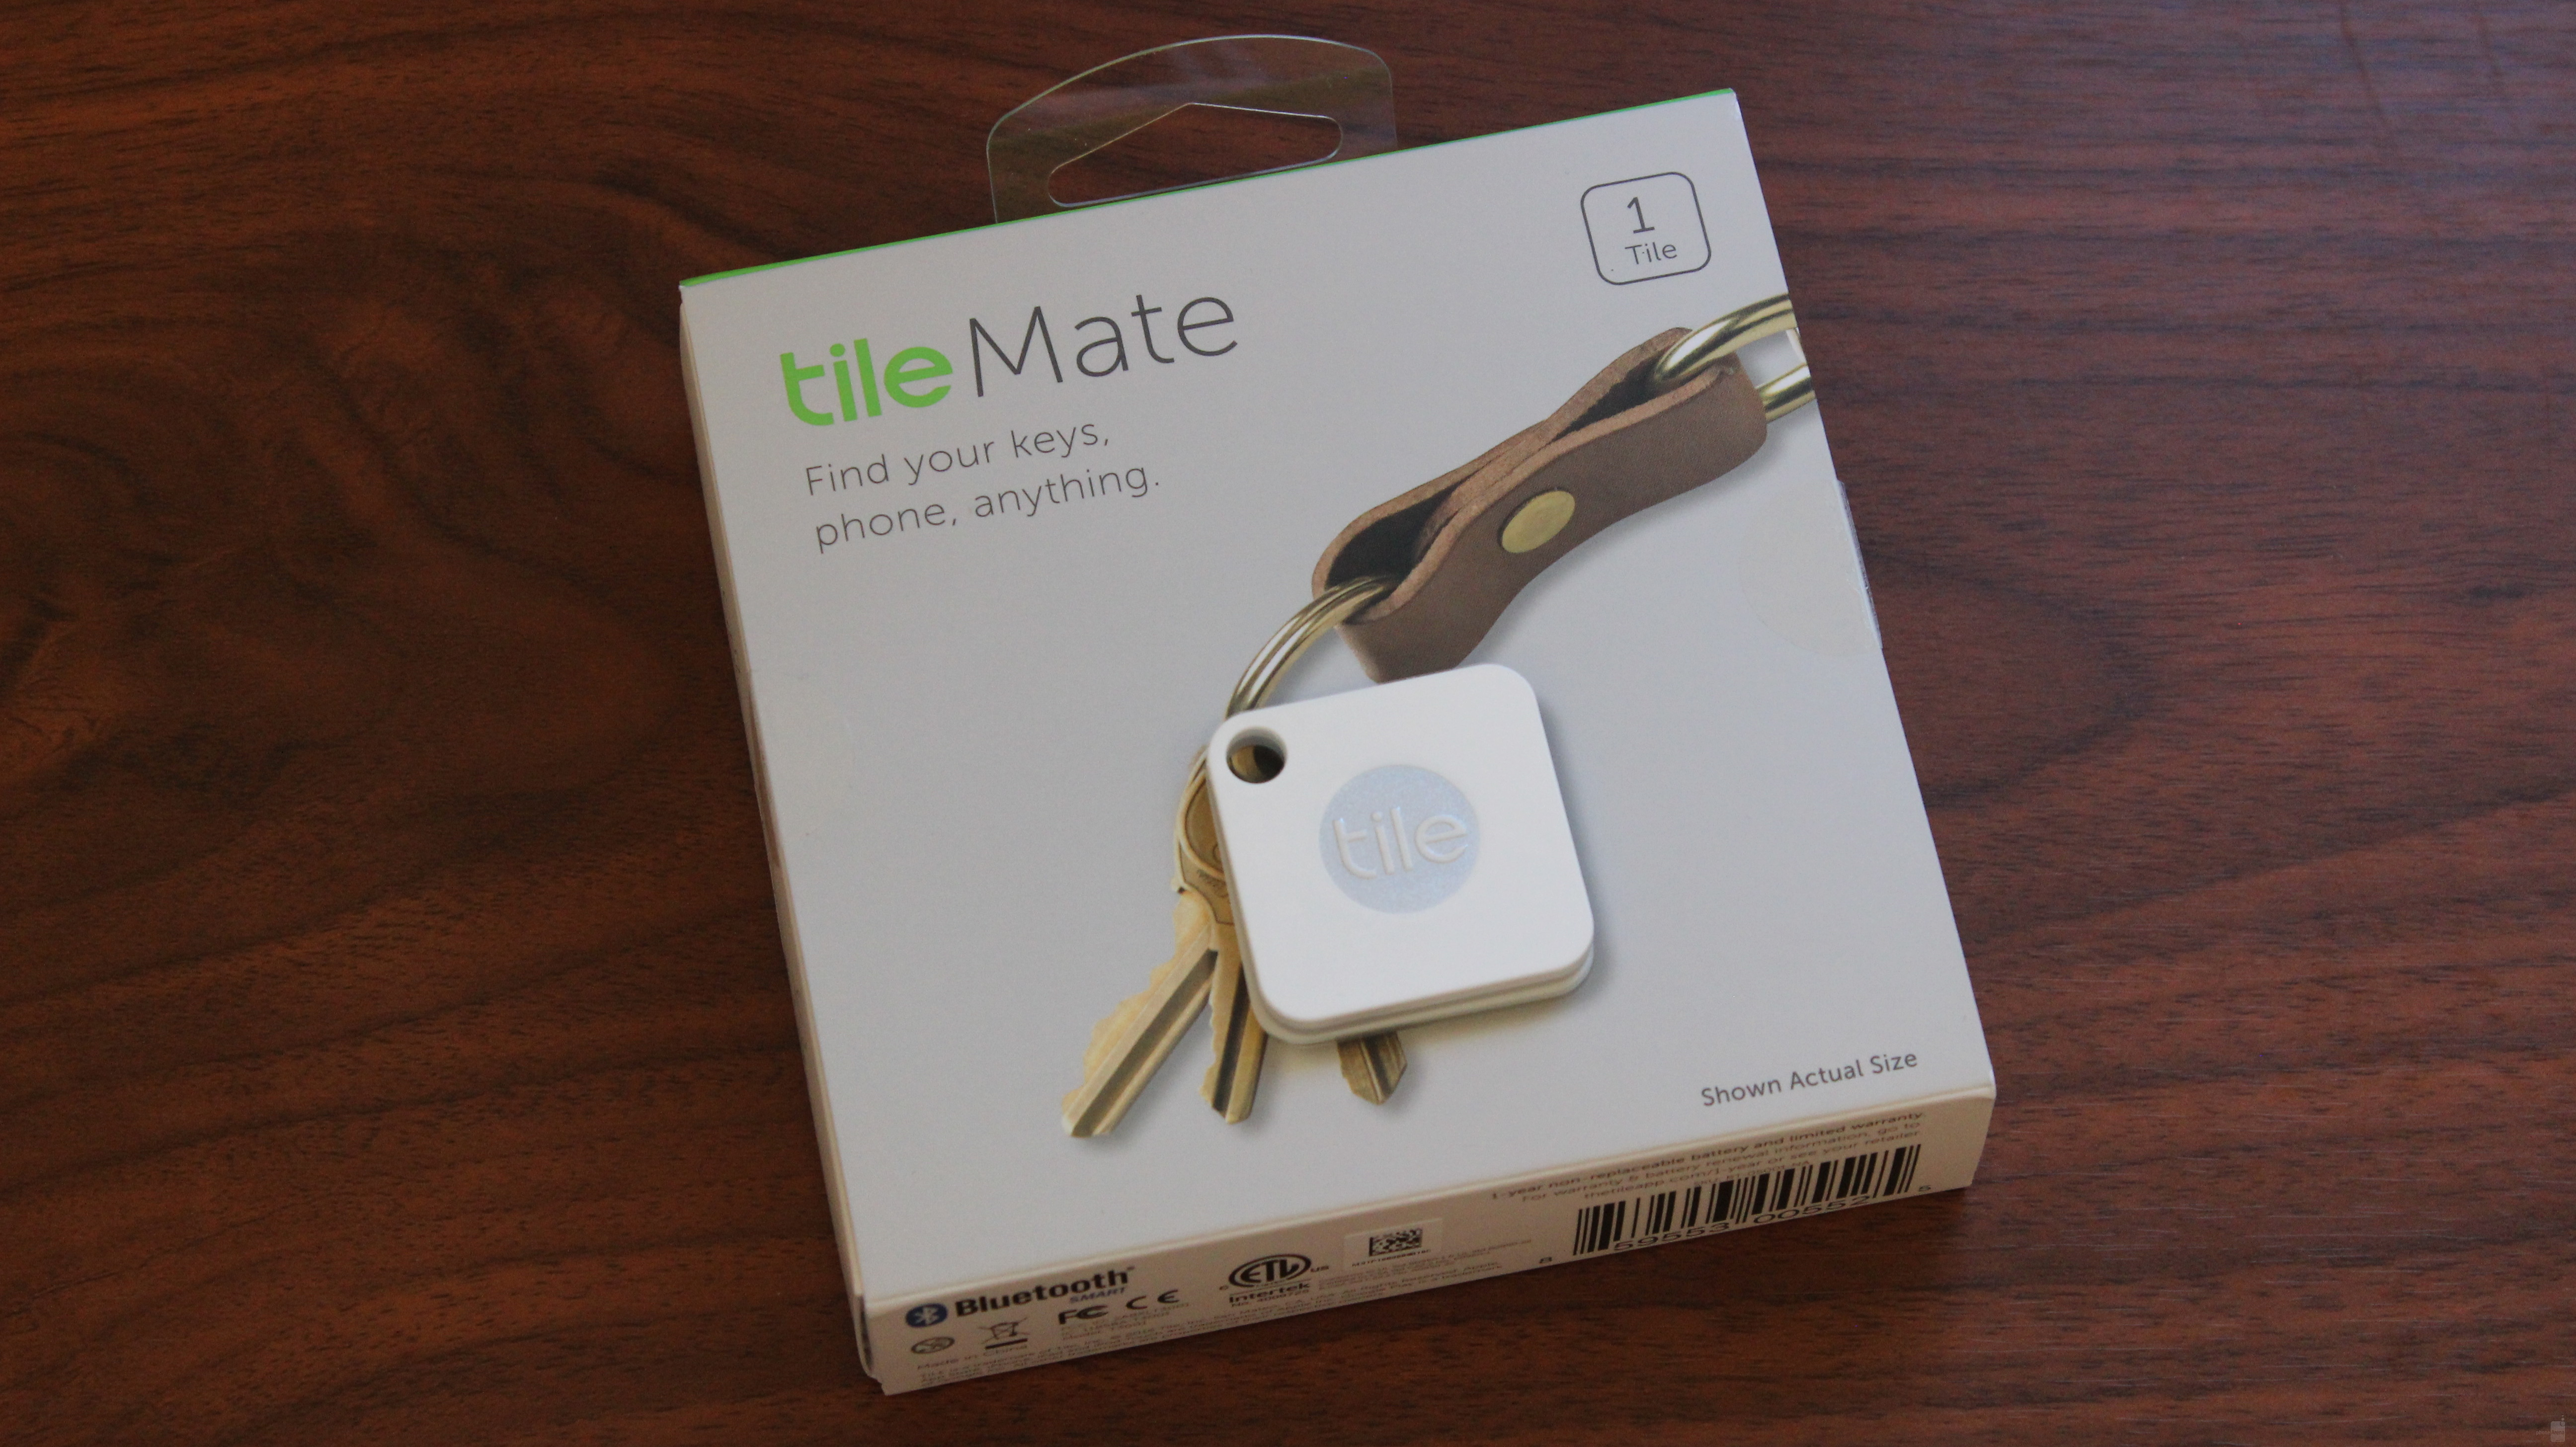 The new Tile Mate is a 25% smaller replacement to the ...